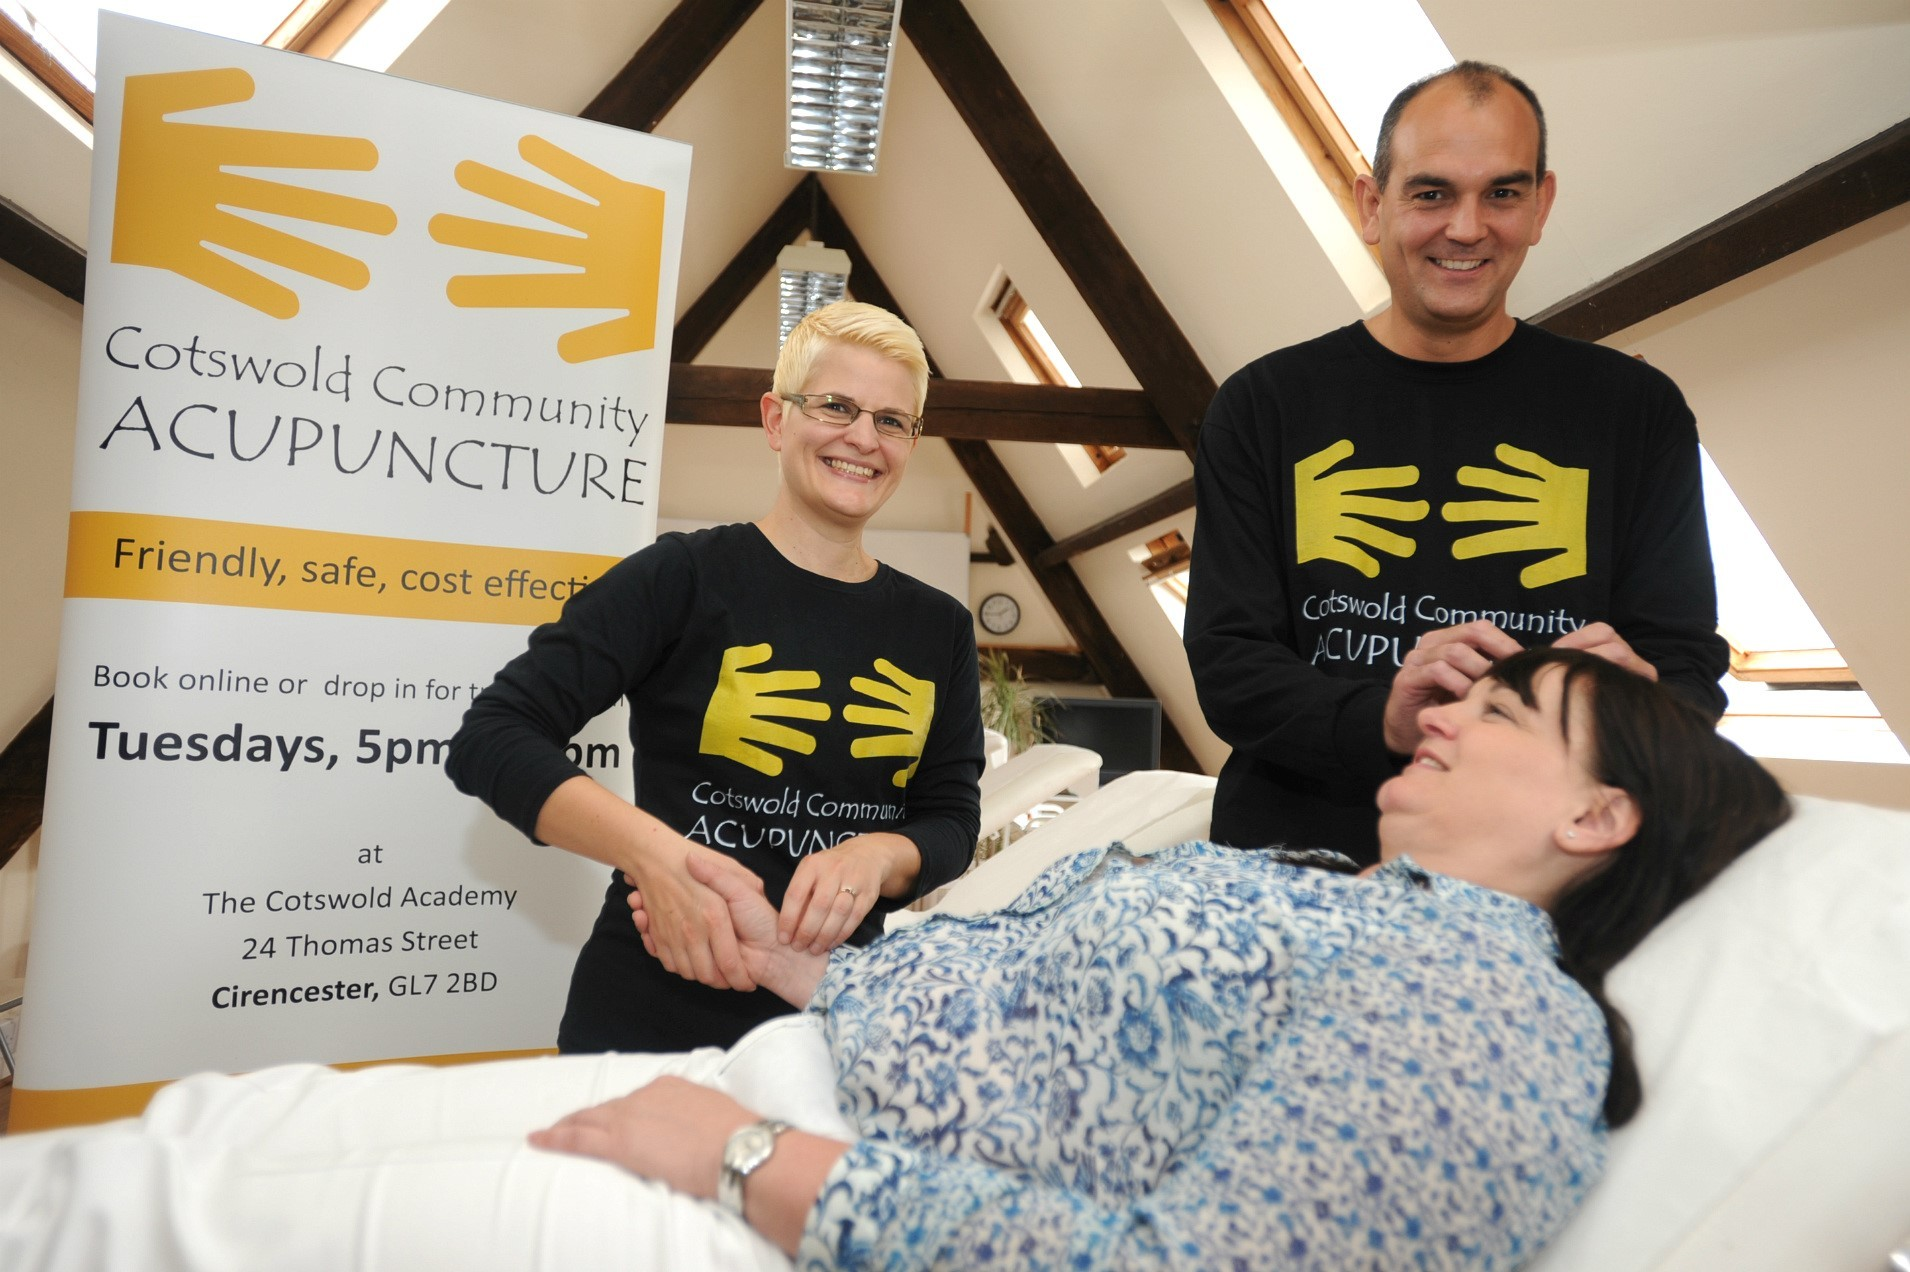 Community acupuncture clinic to open in Cirencester